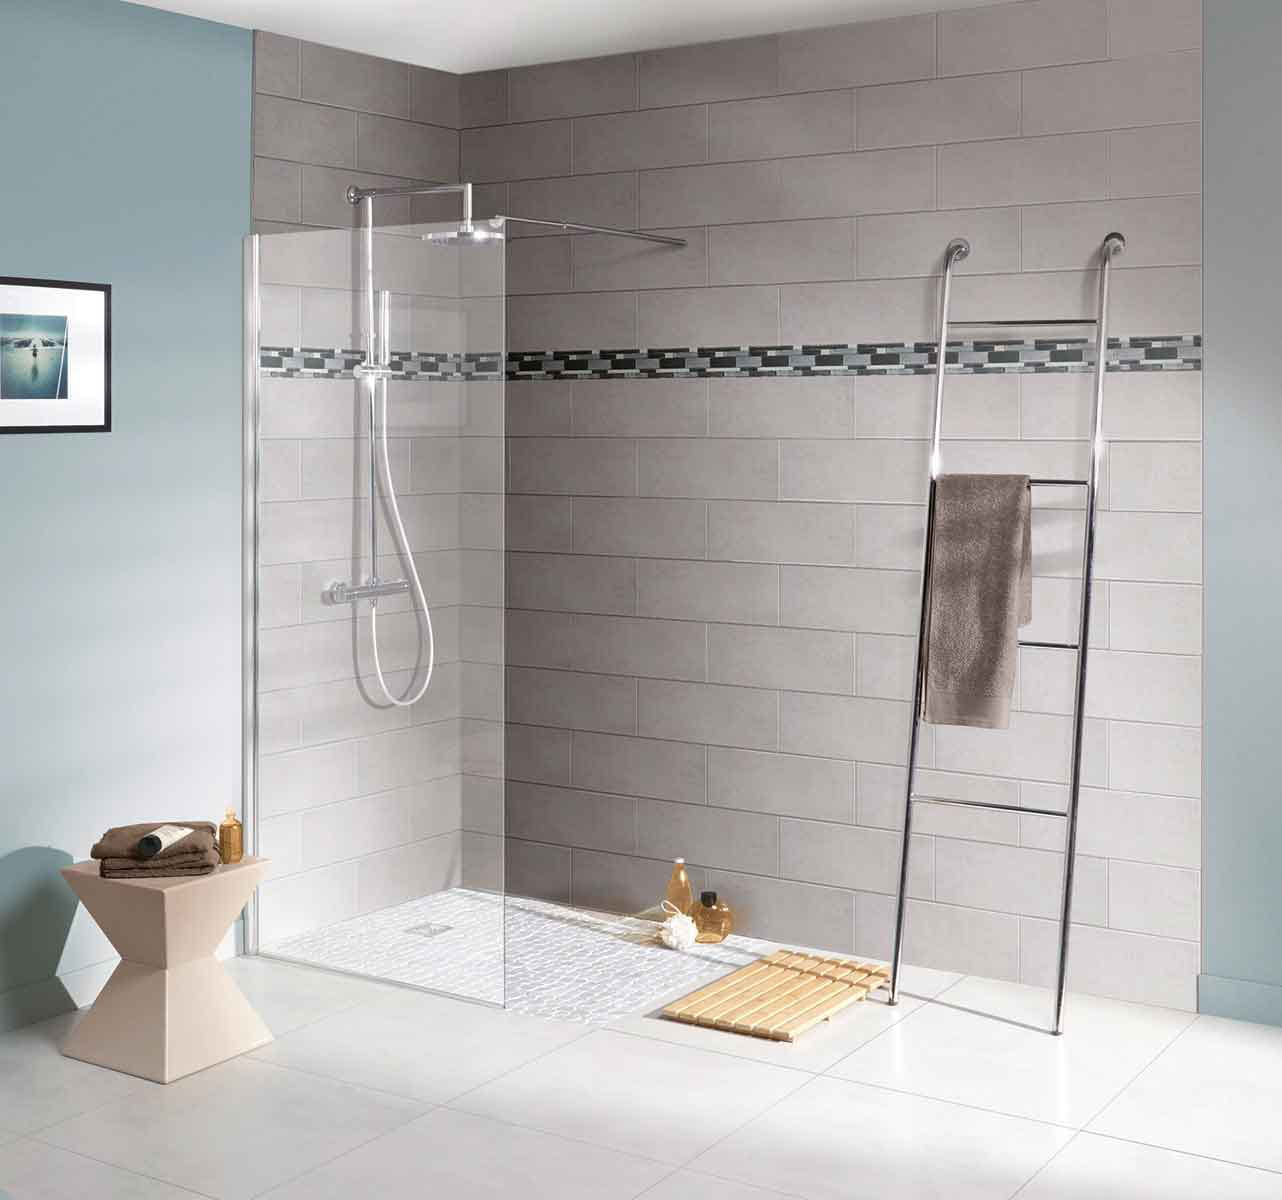 Une douche l 39 italienne simple d limit e par une paroi for Salle de bain a l italienne photo